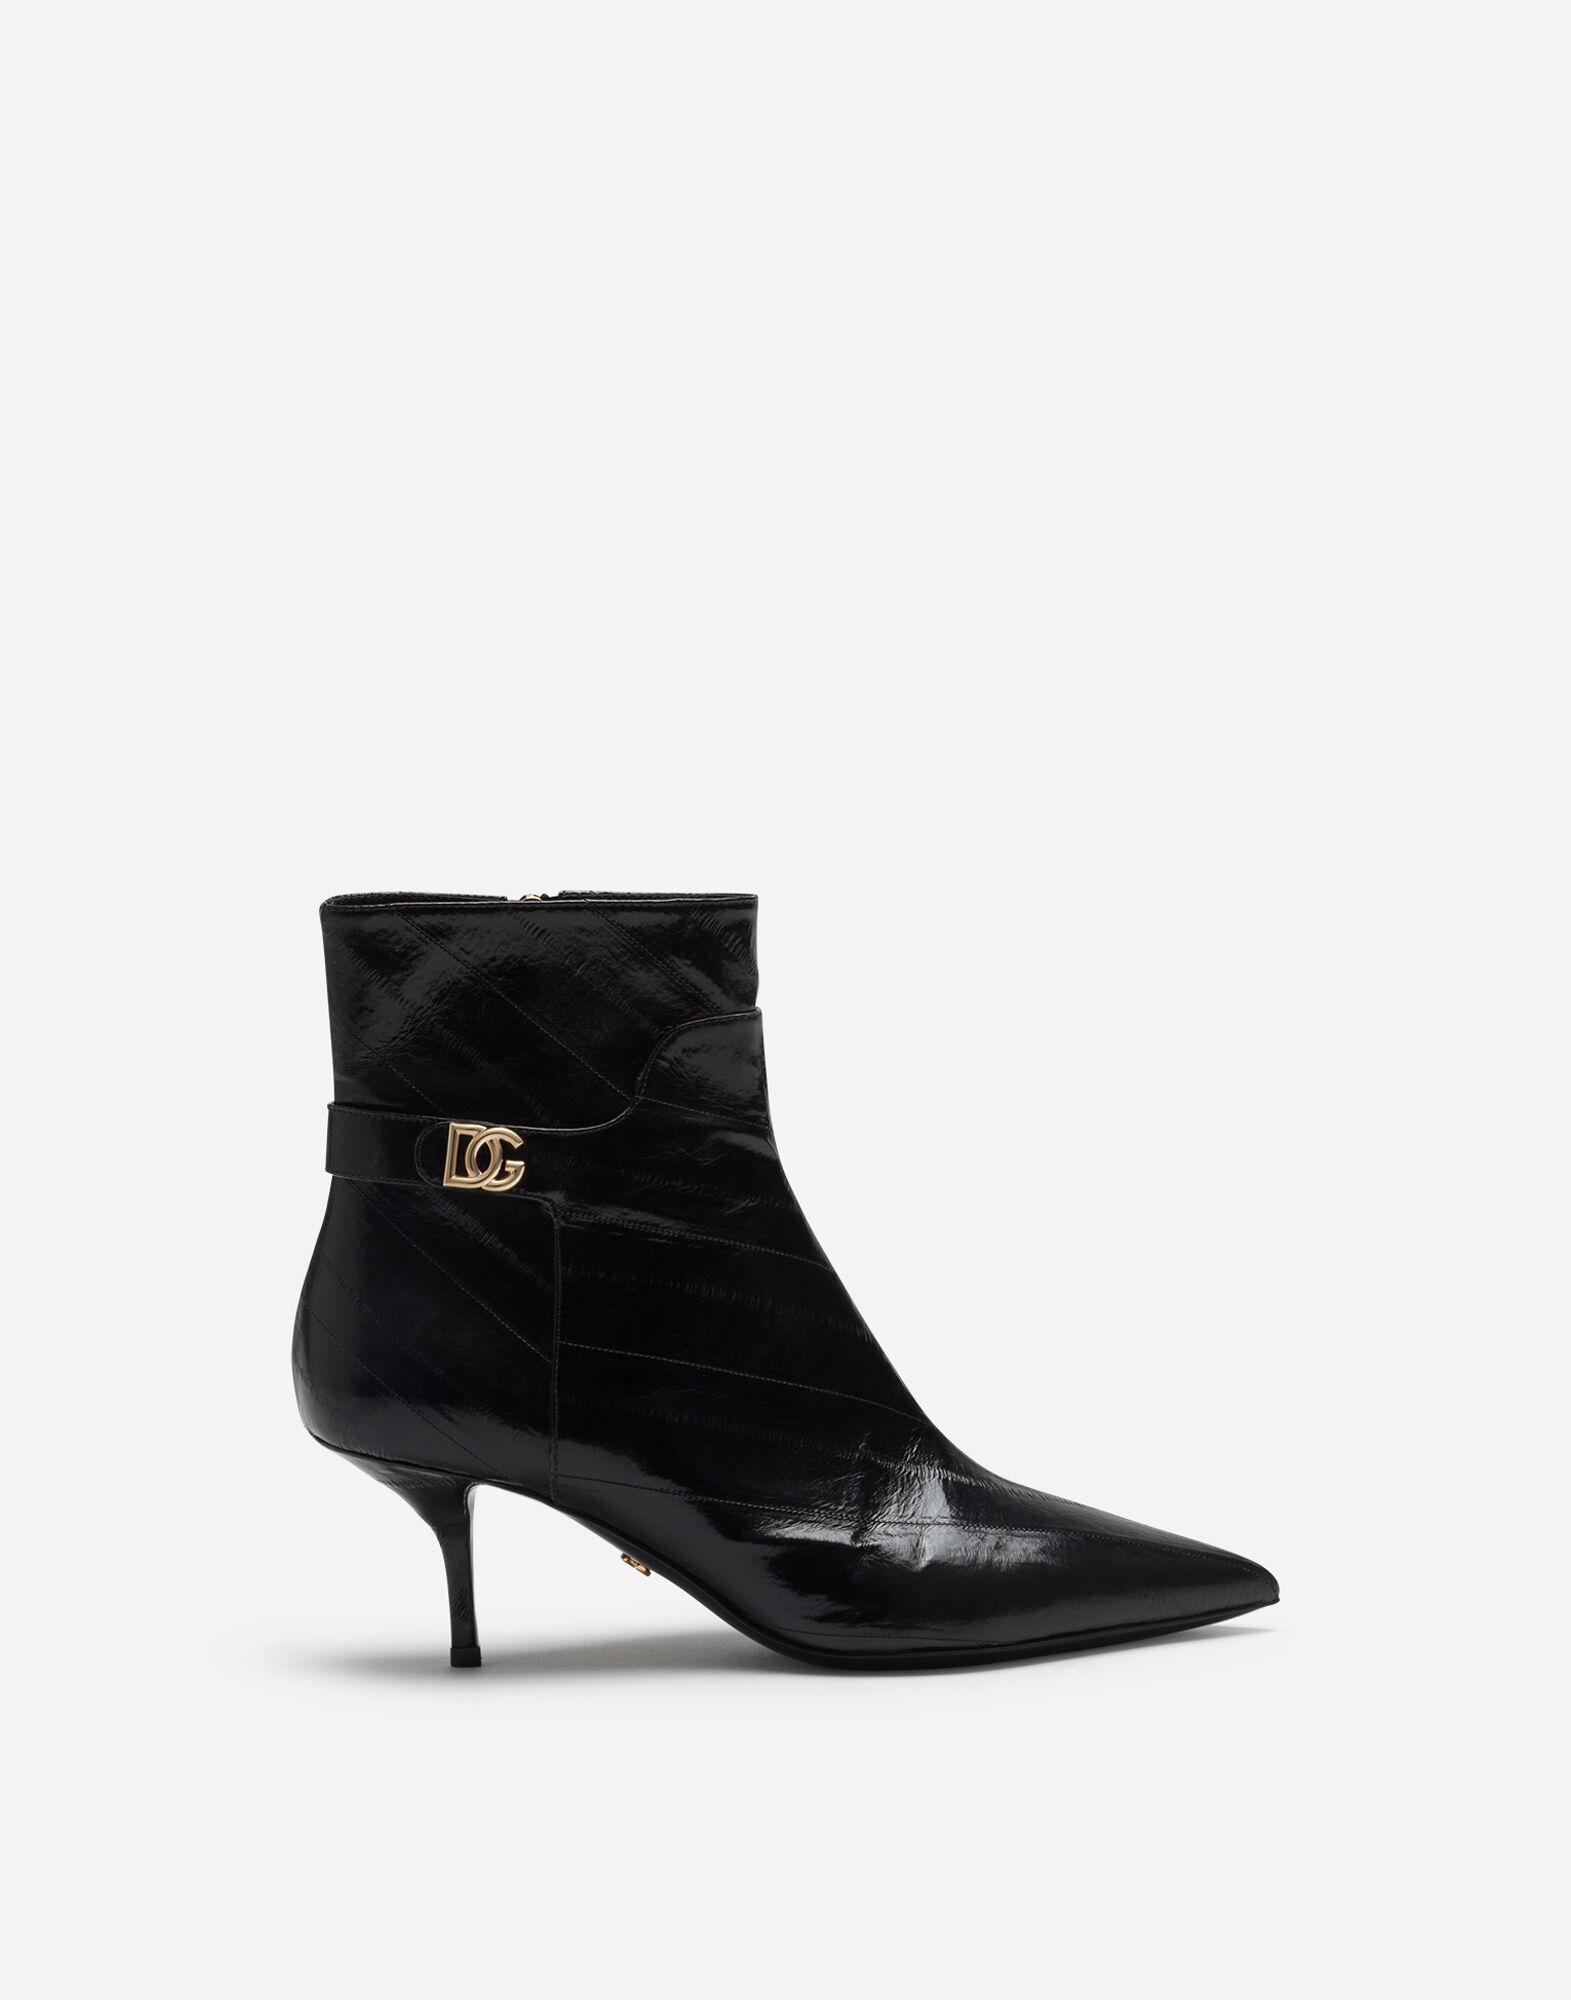 Ankle boots in eel with DG logo